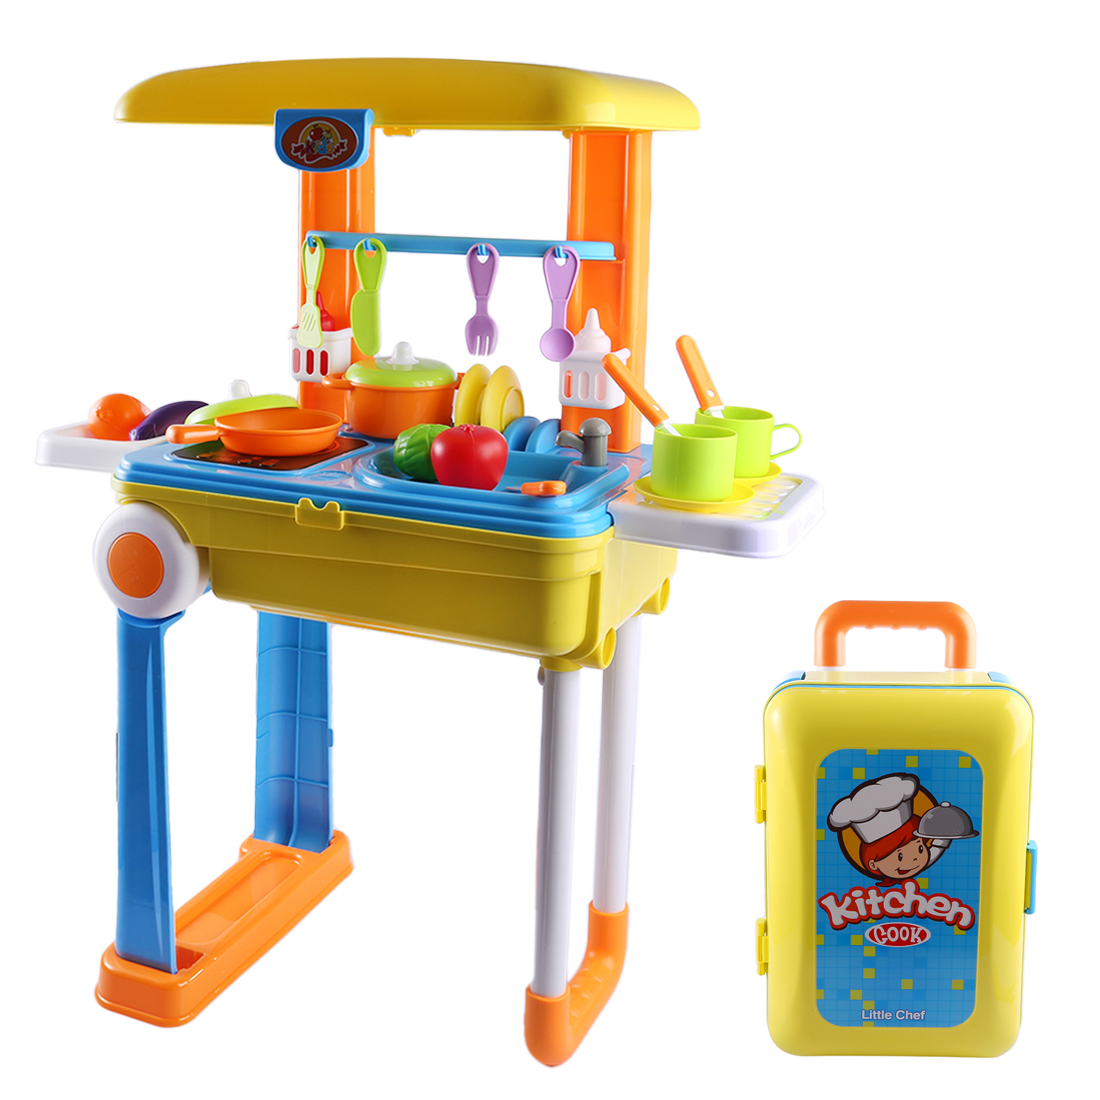 Kids Kitchen Set Children Kitchen Toys Large Kitchen Cooking Simulation Model Educational Toy for Baby with Luggage OrganizerKids Kitchen Set Children Kitchen Toys Large Kitchen Cooking Simulation Model Educational Toy for Baby with Luggage Organizer